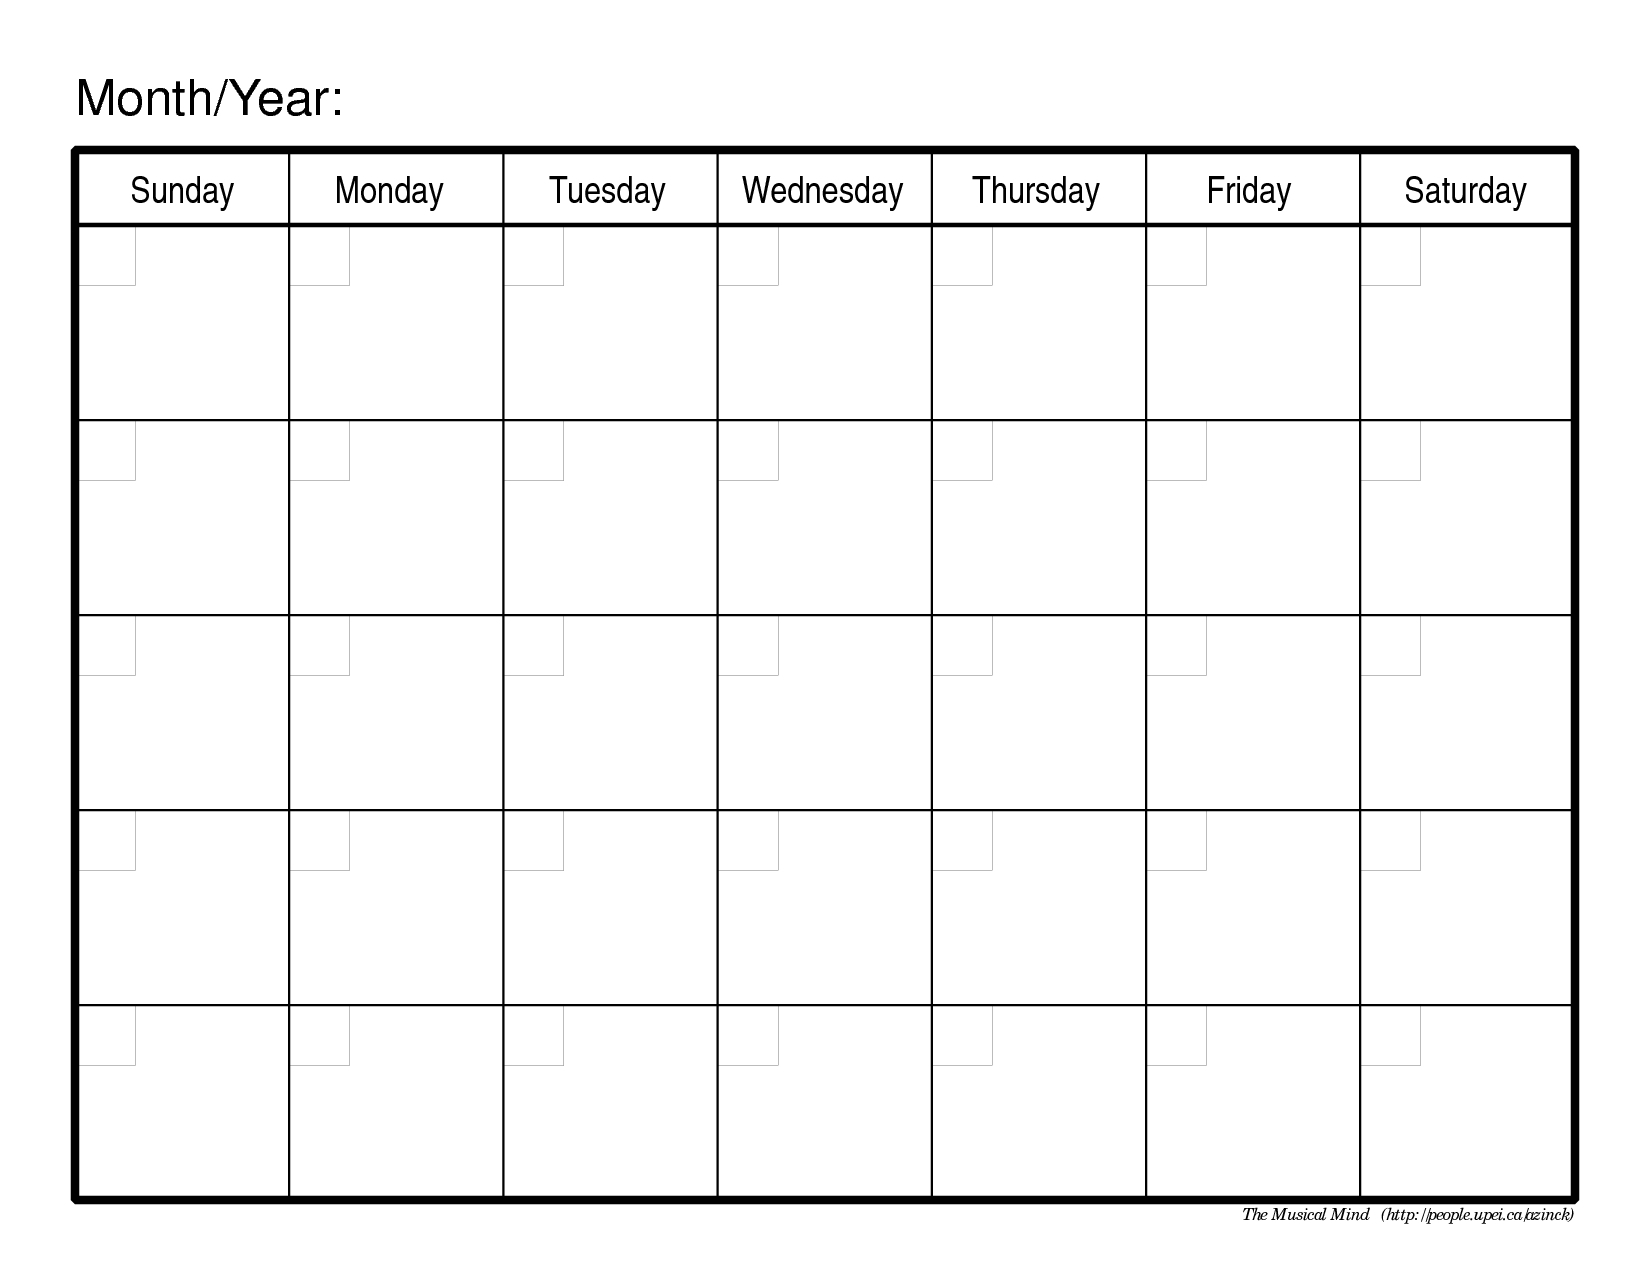 Blank Monthly Calendar Template Pdf | 2018 Yearly Calendar intended for Print Blank Calendar Month By Month